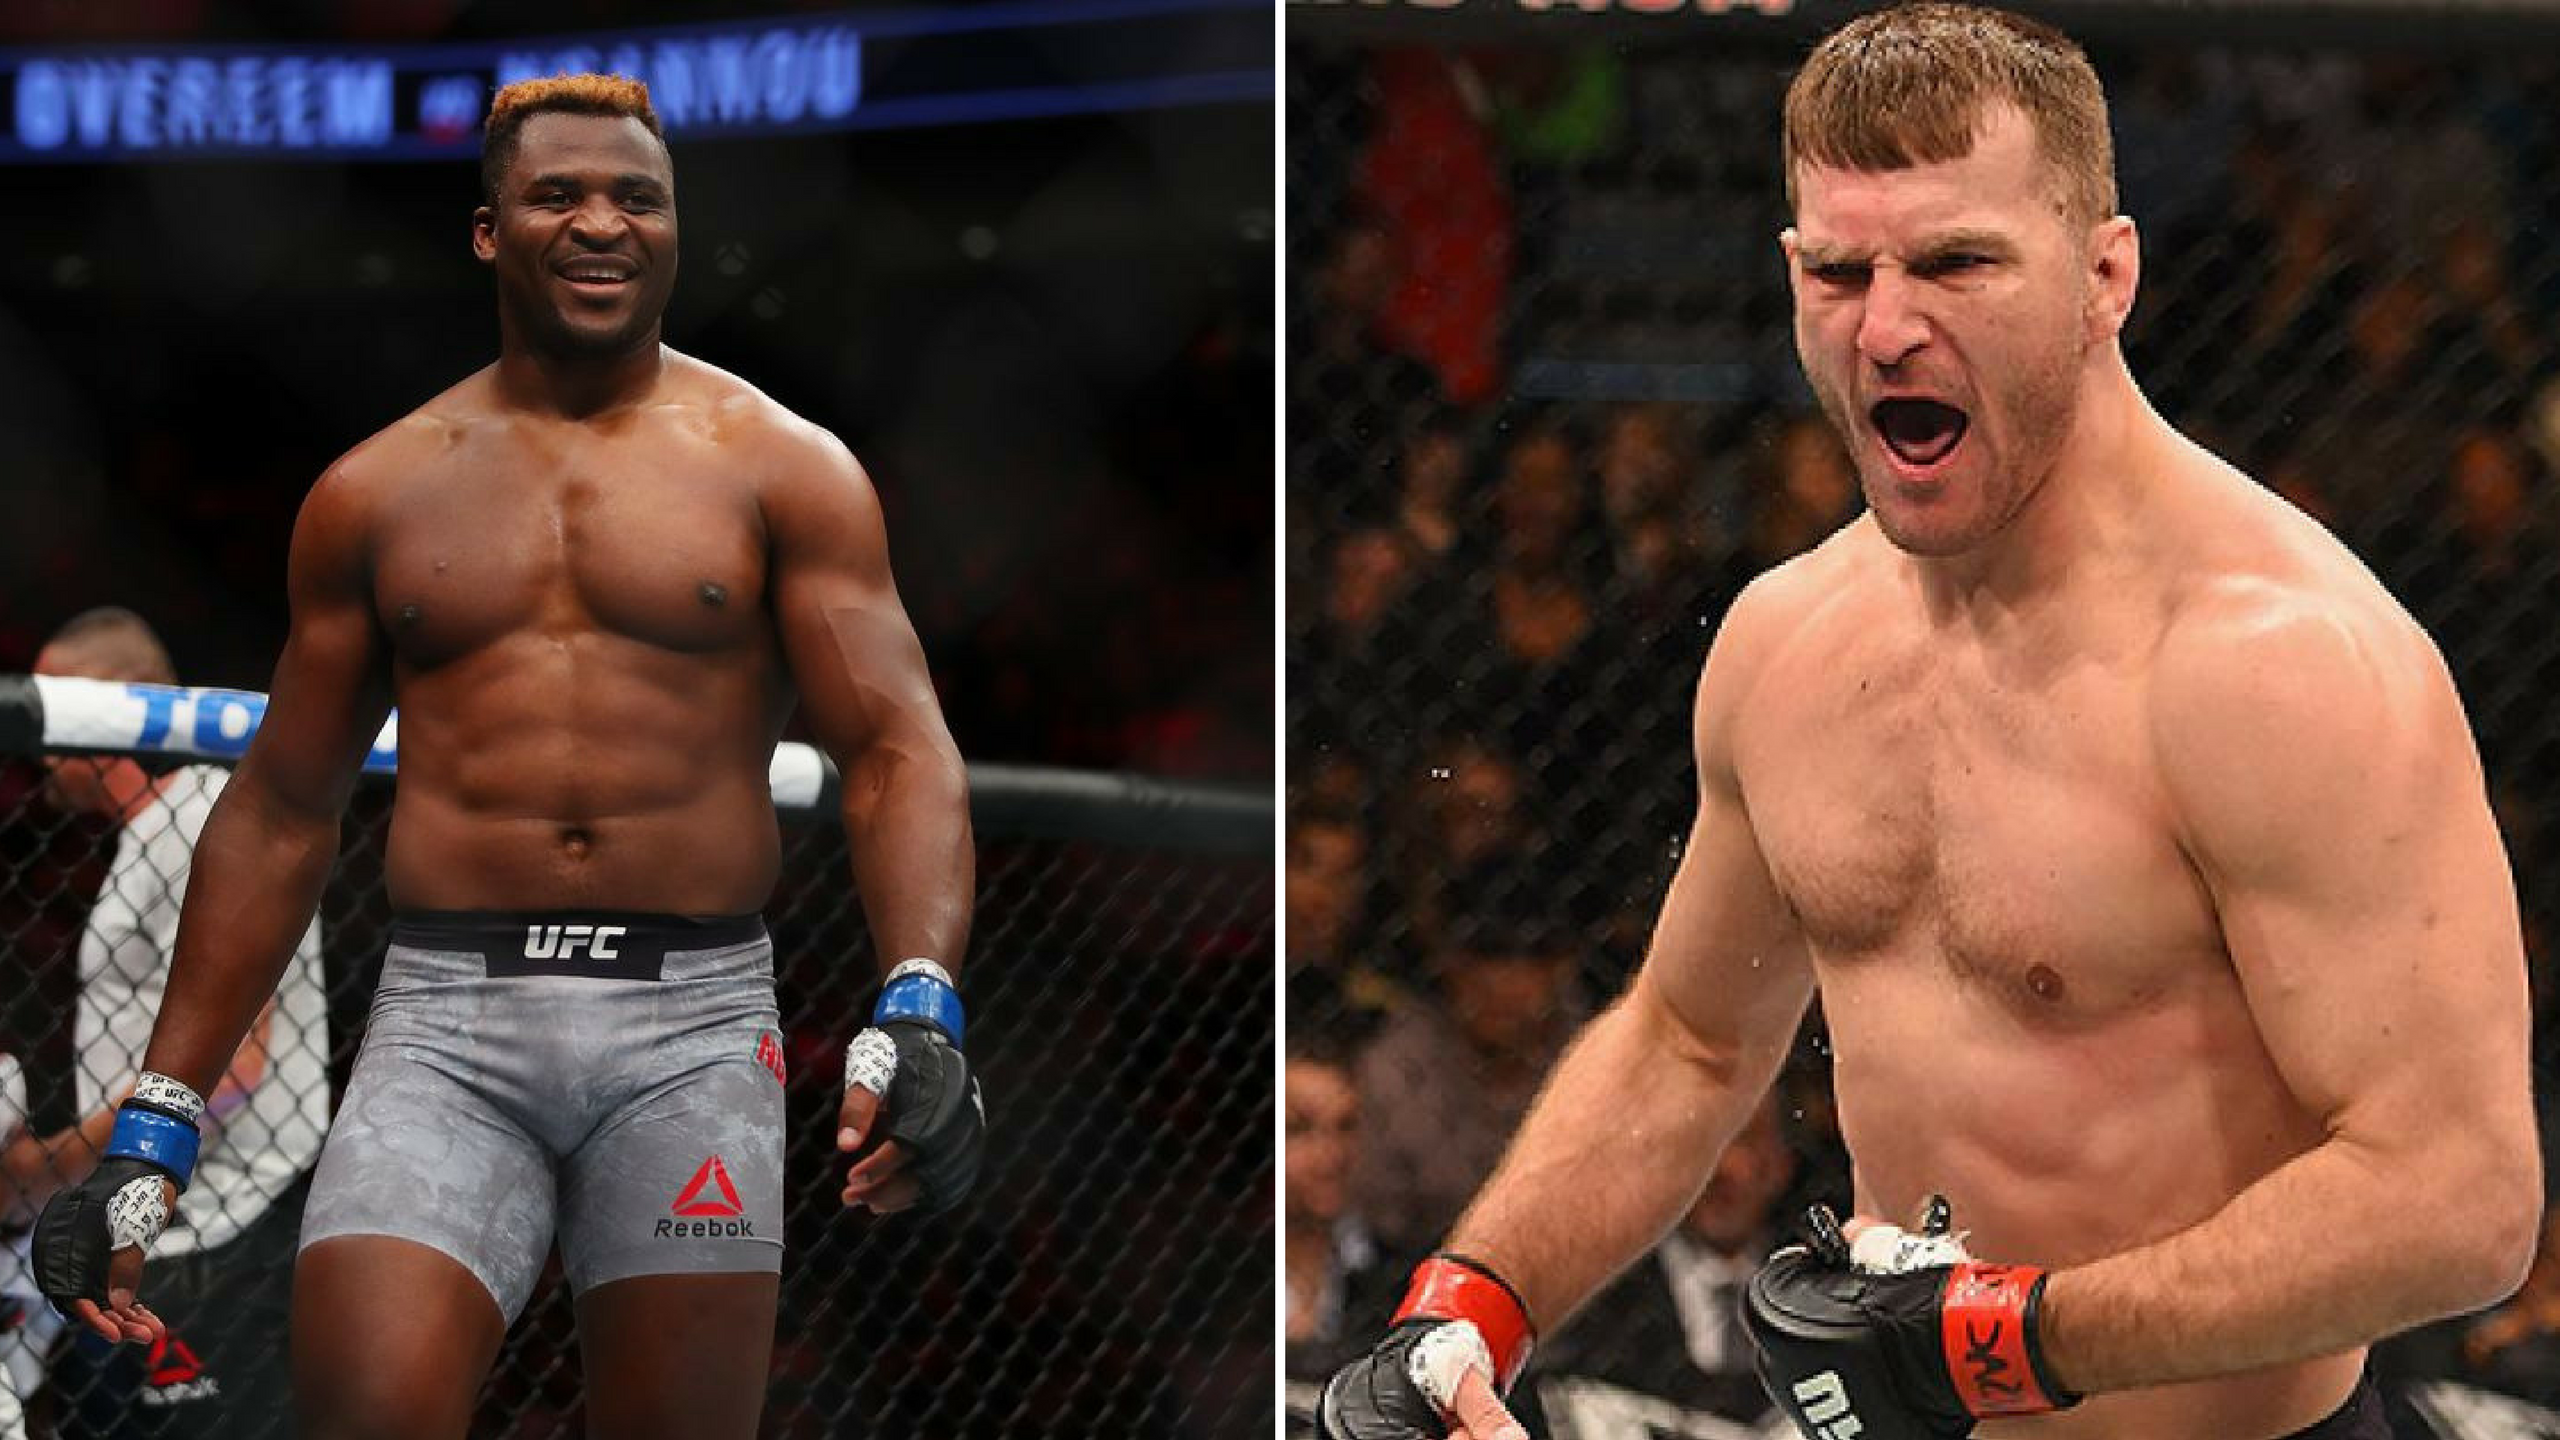 UFC is targeting Stipe Miocic vs Francis Ngannou fight for April 2021 - Ngannou